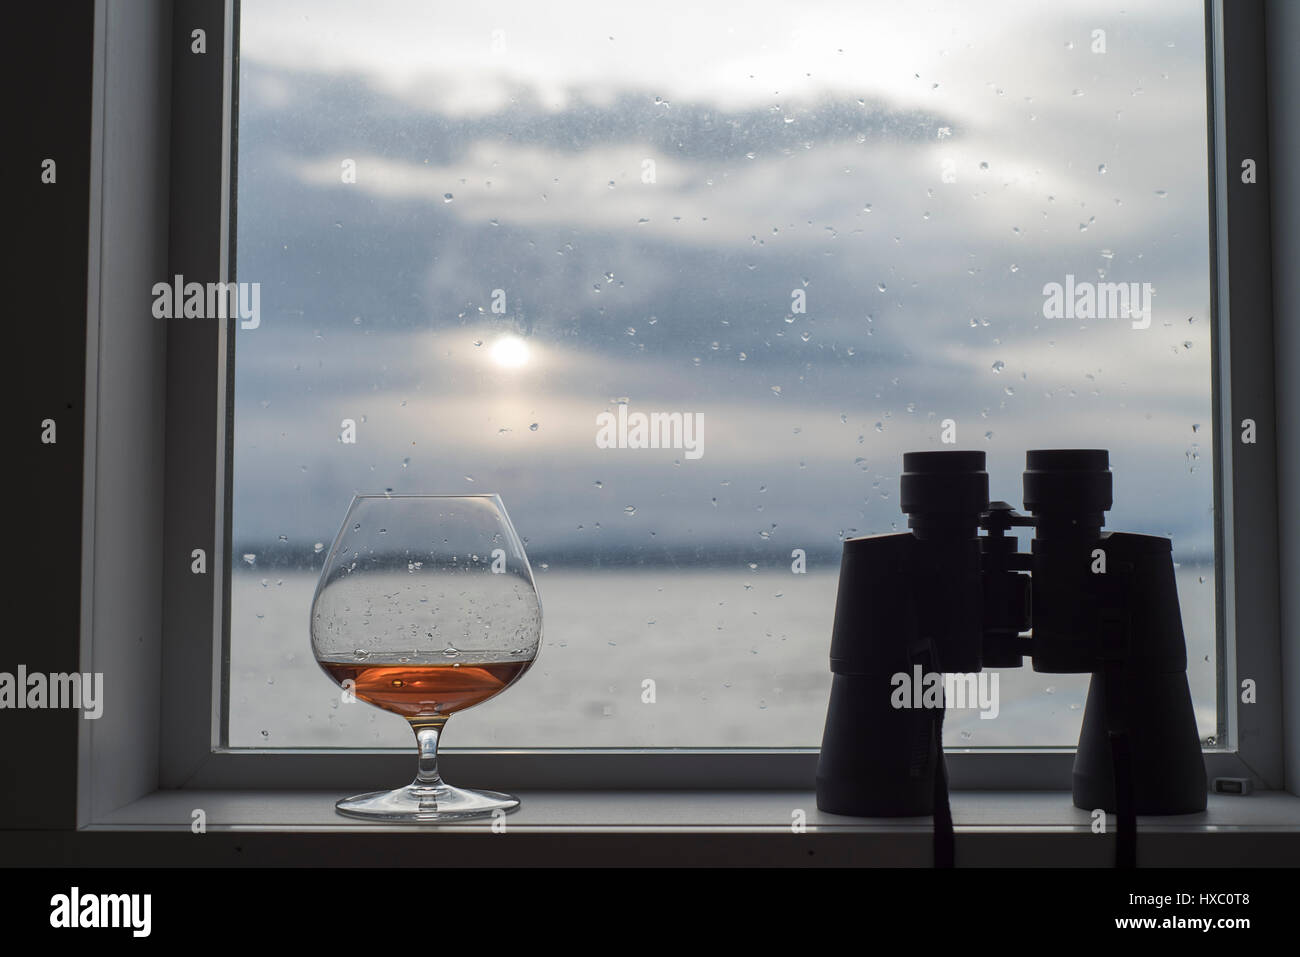 Brandy snifter glass in window with binoculars Stock Photo